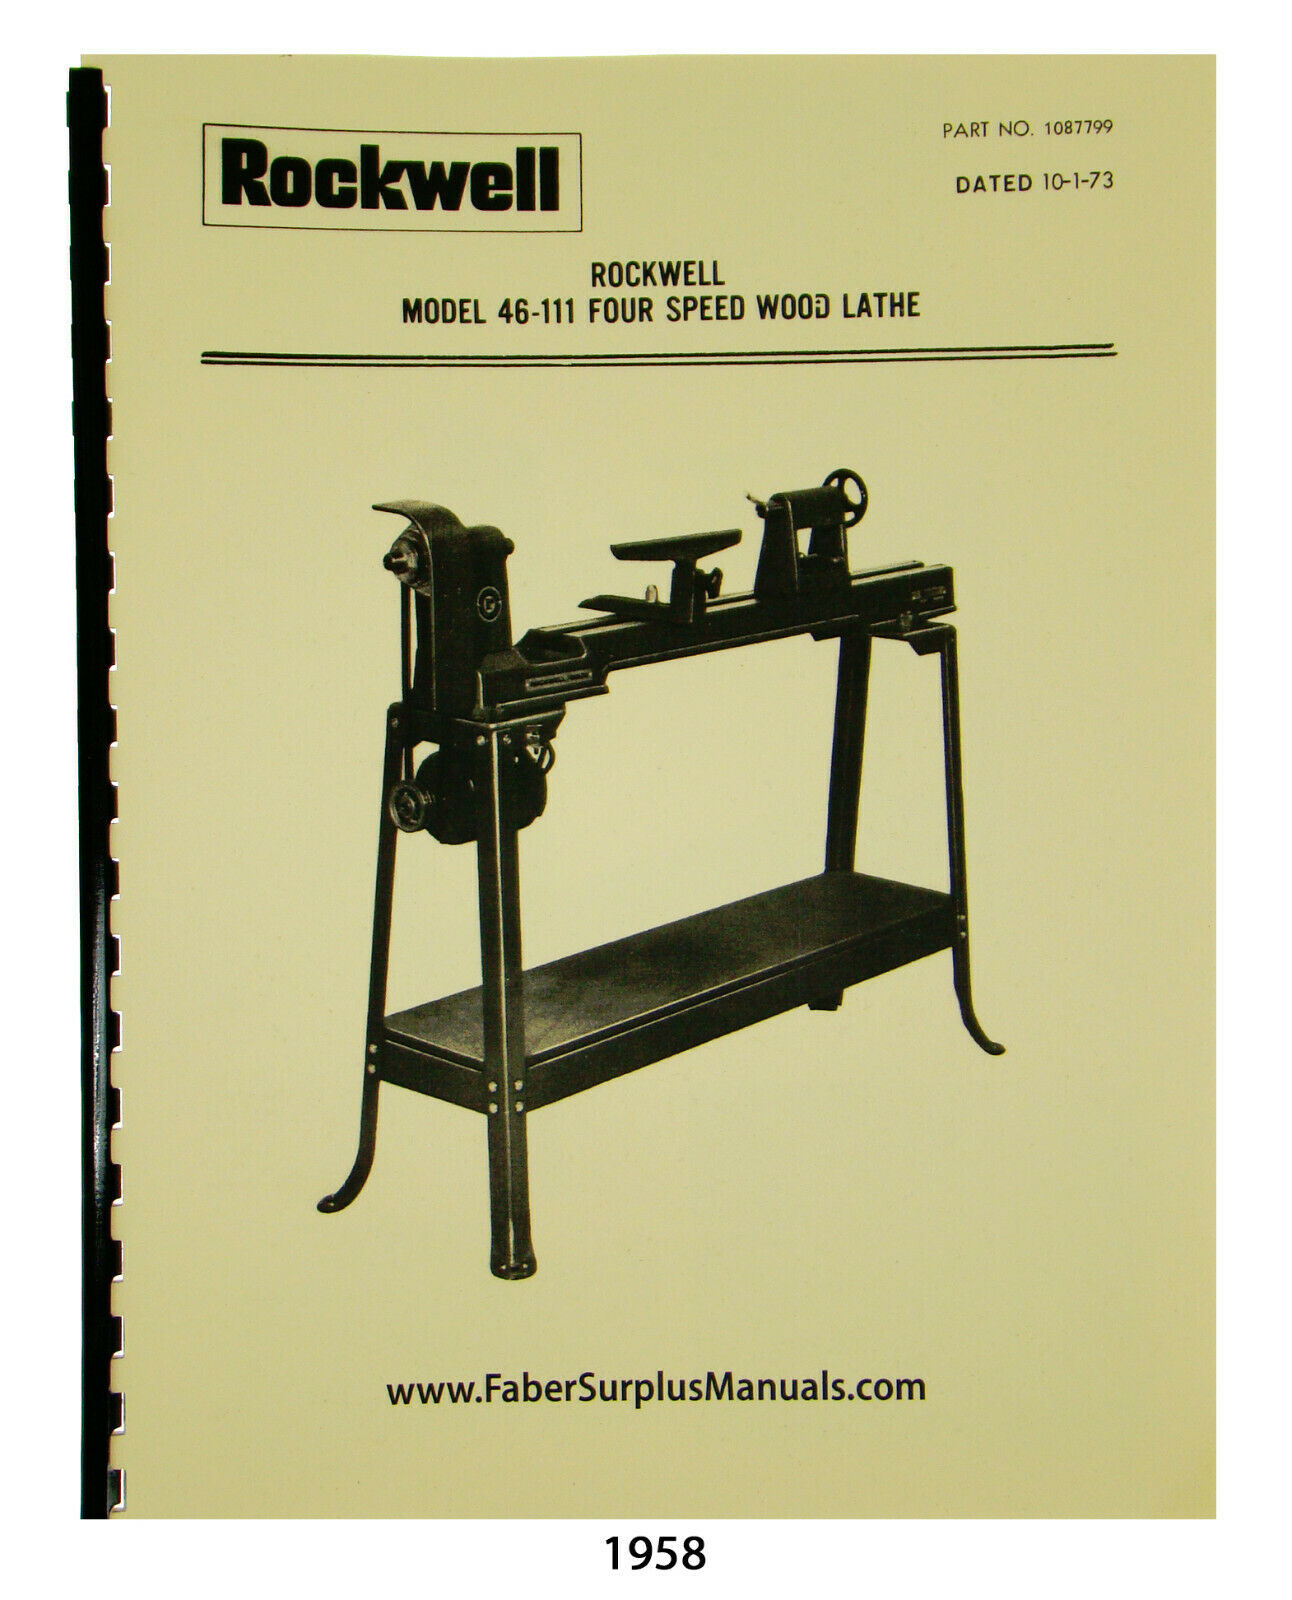 Rockwell 4 Speed 46-111 & Others Wood Lathe Instructions and Parts Manual #1958